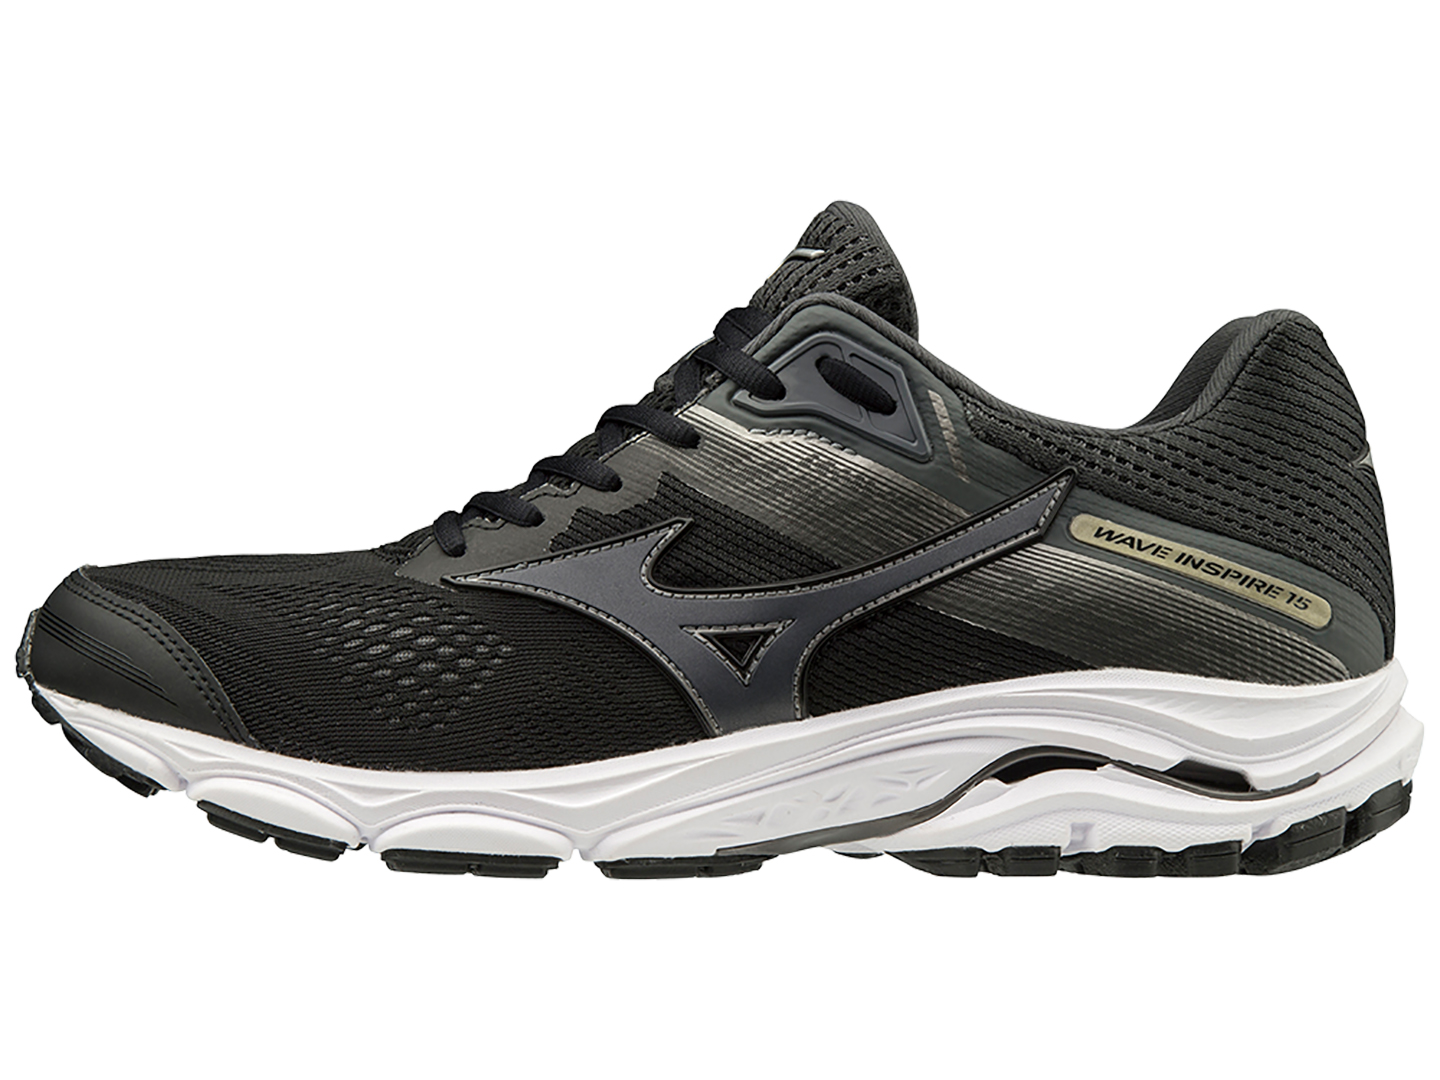 Mizuno Wave Inspire 15 Shoes | Running shoes